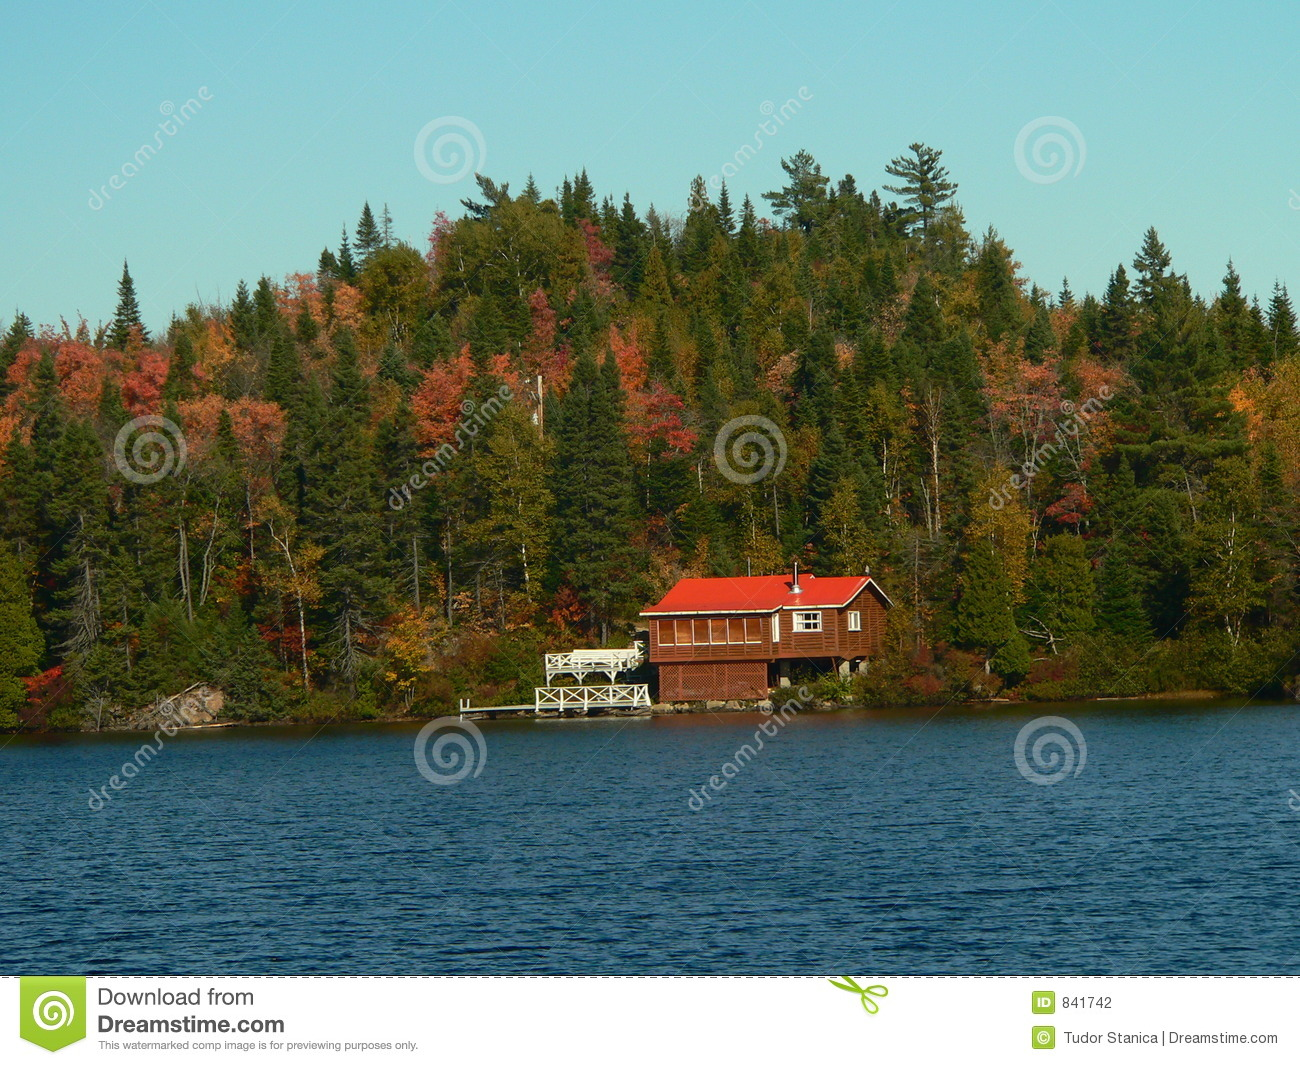 Red house on the lake shore